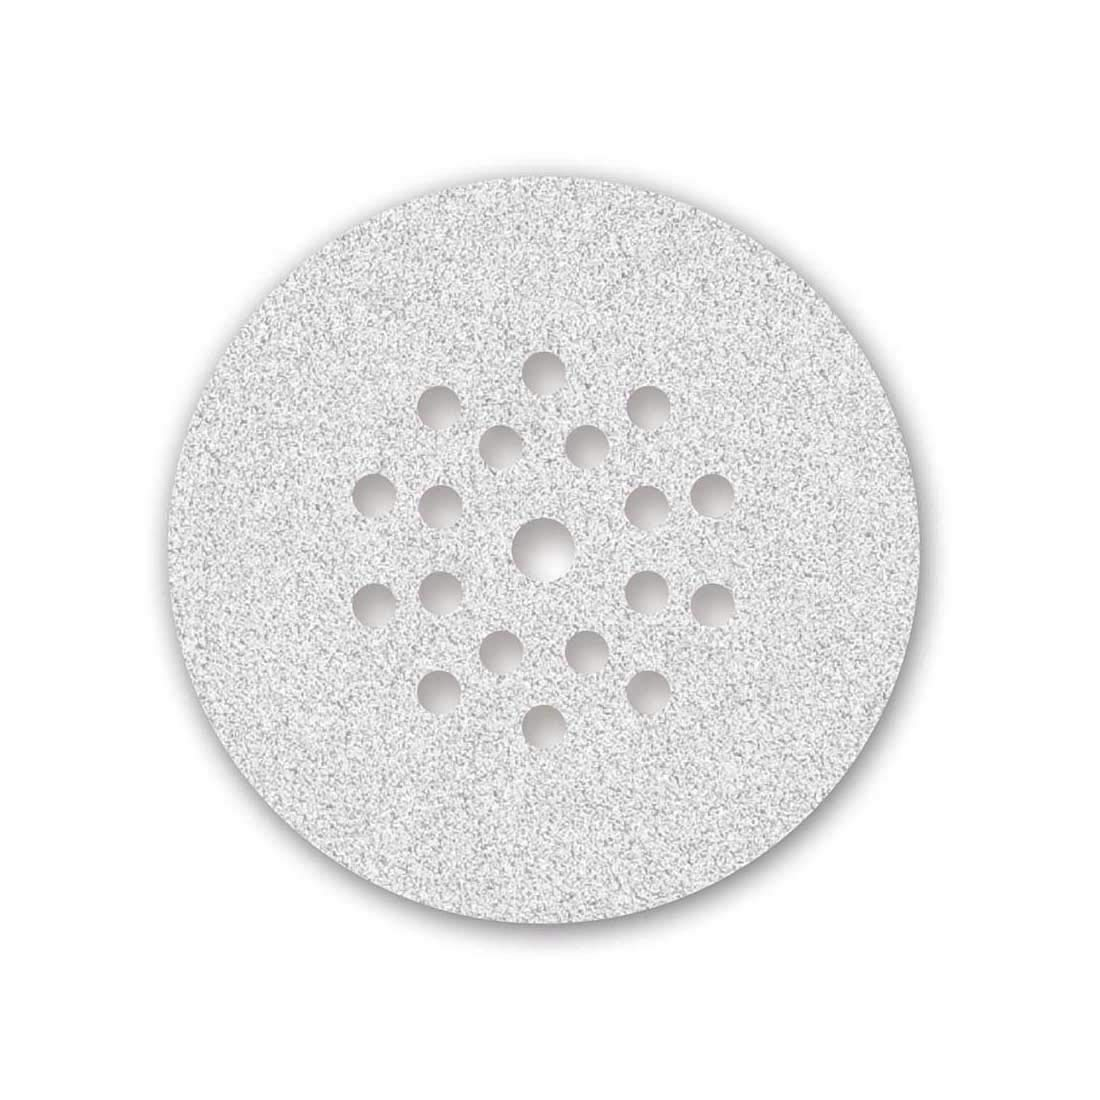 25 MioTools Hook /& Loop Sanding Discs for Dry Wall Sanders and Sanding Giraffes Grit 100 /ø 225 mm